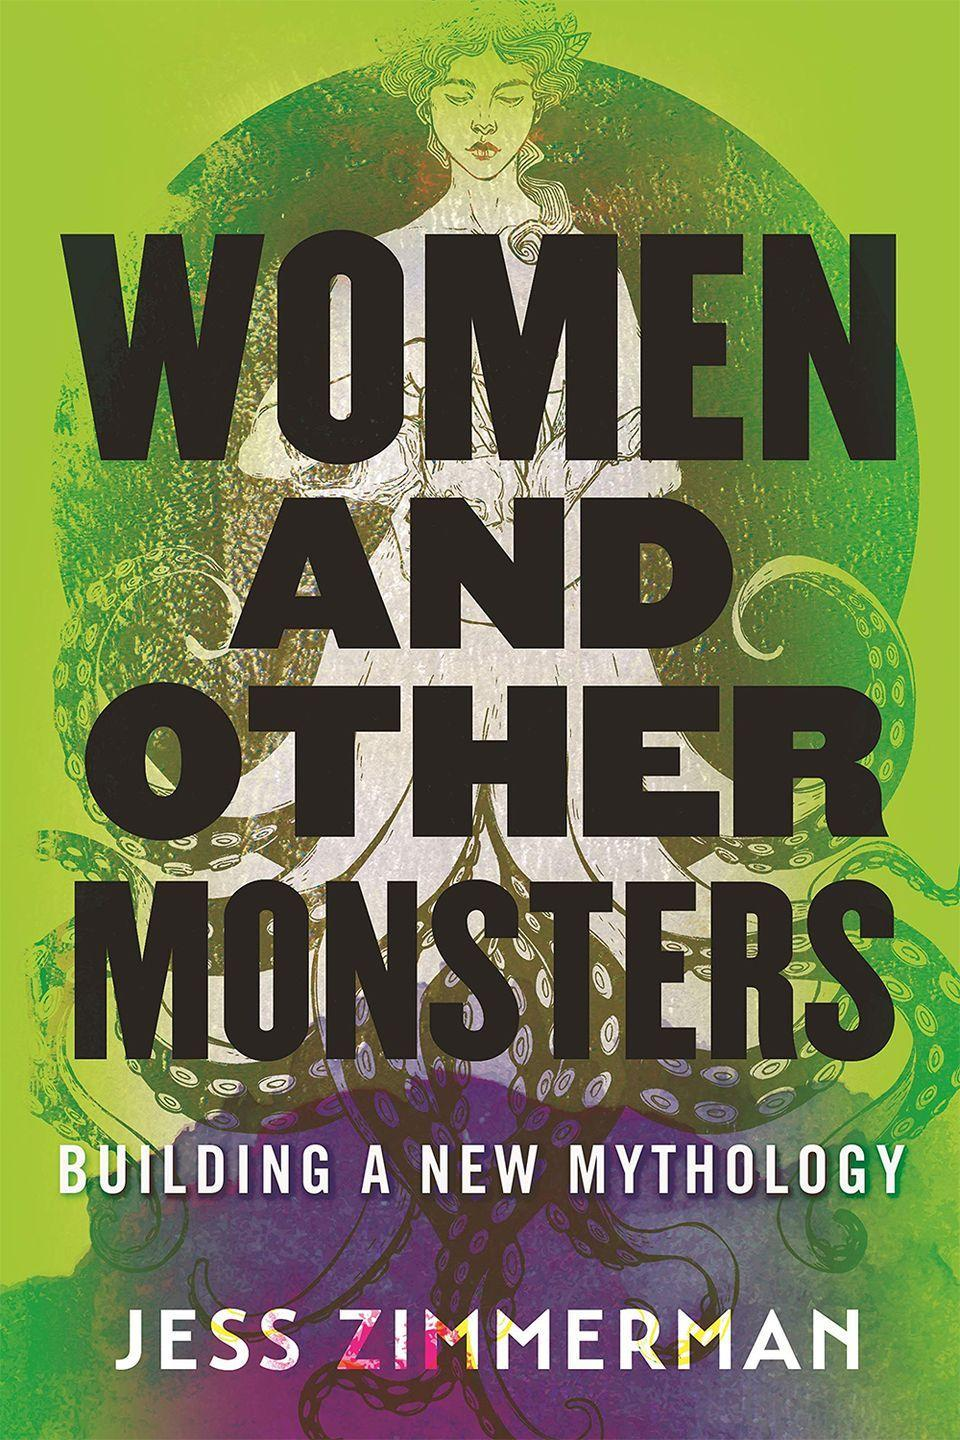 """<p>If you like to get a healthy dose of feminist analysis with your spooky fix, look no further than Jess Zimmerman's complicated love letter to 11 of Greek mythology's most infamous female monsters. So often, women are told that experiencing and expressing human emotions—like hunger, rage, and ambition—will make them monstrous. Taking cues from Medusa, the Furies, and more, Zimmerman flips that idea on its head, encouraging female readers to ask ourselves: What is it we're really afraid of?</p><p><a class=""""link rapid-noclick-resp"""" href=""""https://www.amazon.com/Women-Other-Monsters-Building-Mythology/dp/B08BG5Z8Q7/ref=sr_1_1?dchild=1&keywords=Women+and+Other+Monsters&qid=1633018019&s=books&sr=1-1&tag=syn-yahoo-20&ascsubtag=%5Bartid%7C10056.g.37805016%5Bsrc%7Cyahoo-us"""" rel=""""nofollow noopener"""" target=""""_blank"""" data-ylk=""""slk:BUY NOW"""">BUY NOW</a></p>"""